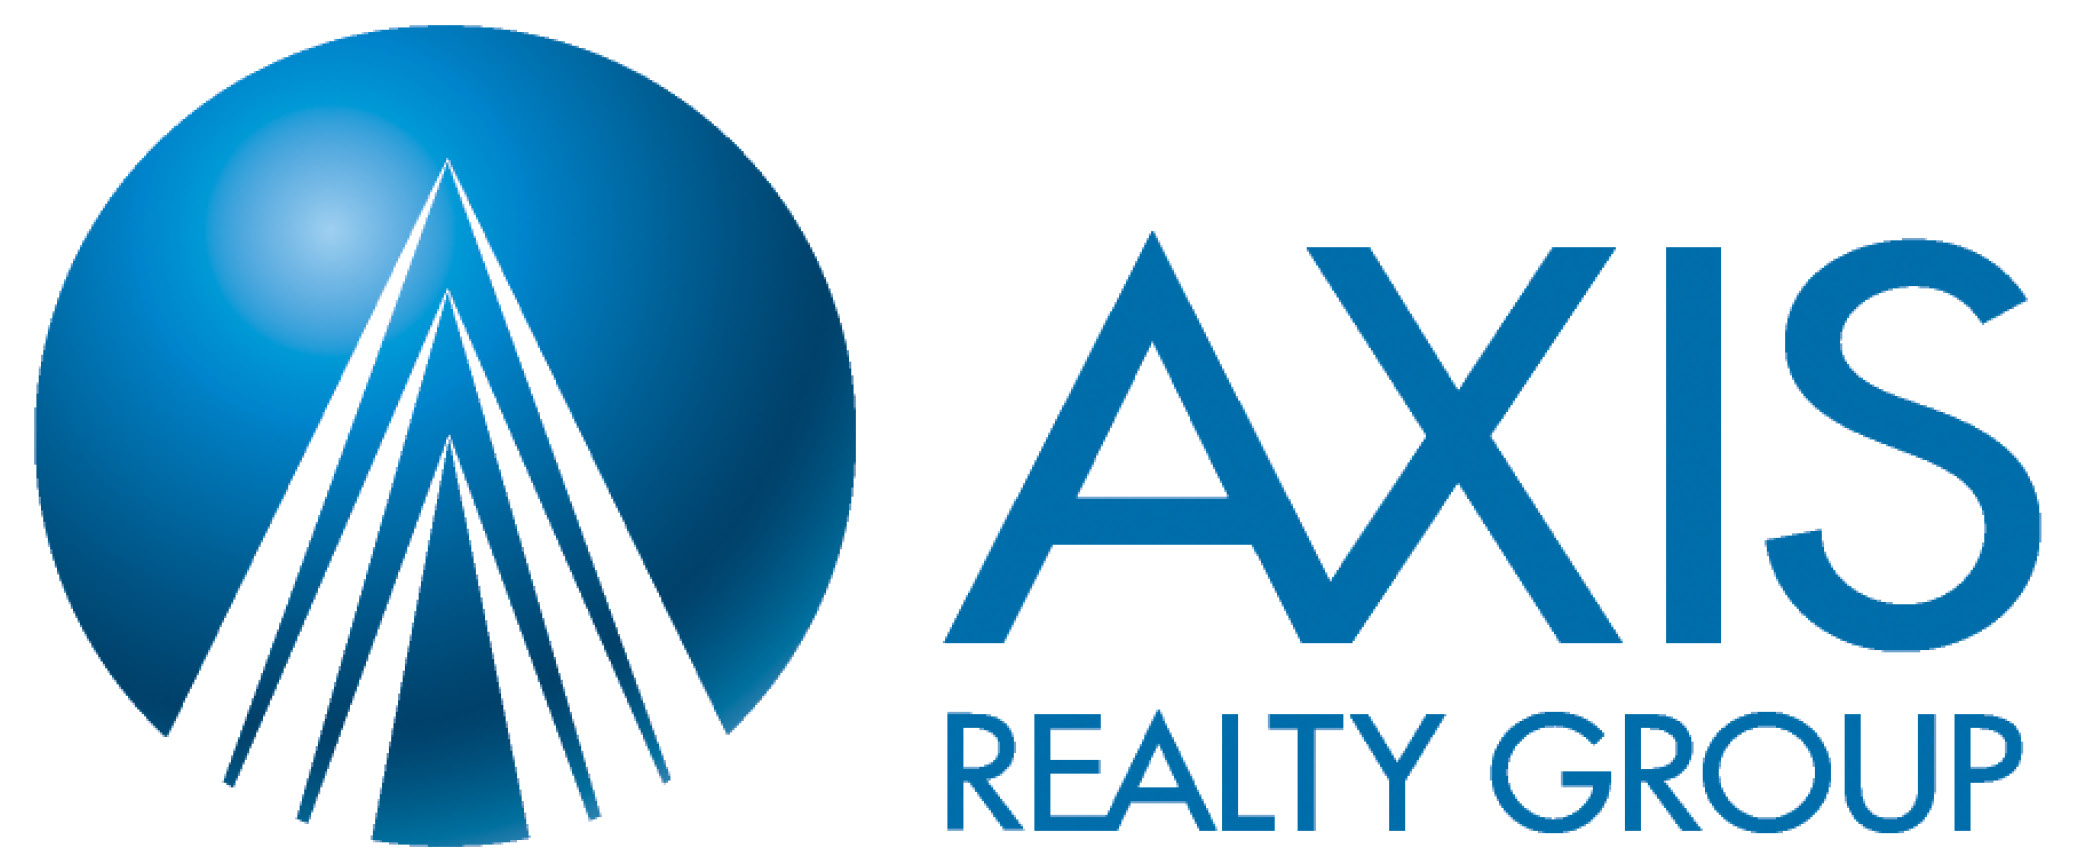 Axis Realty Group